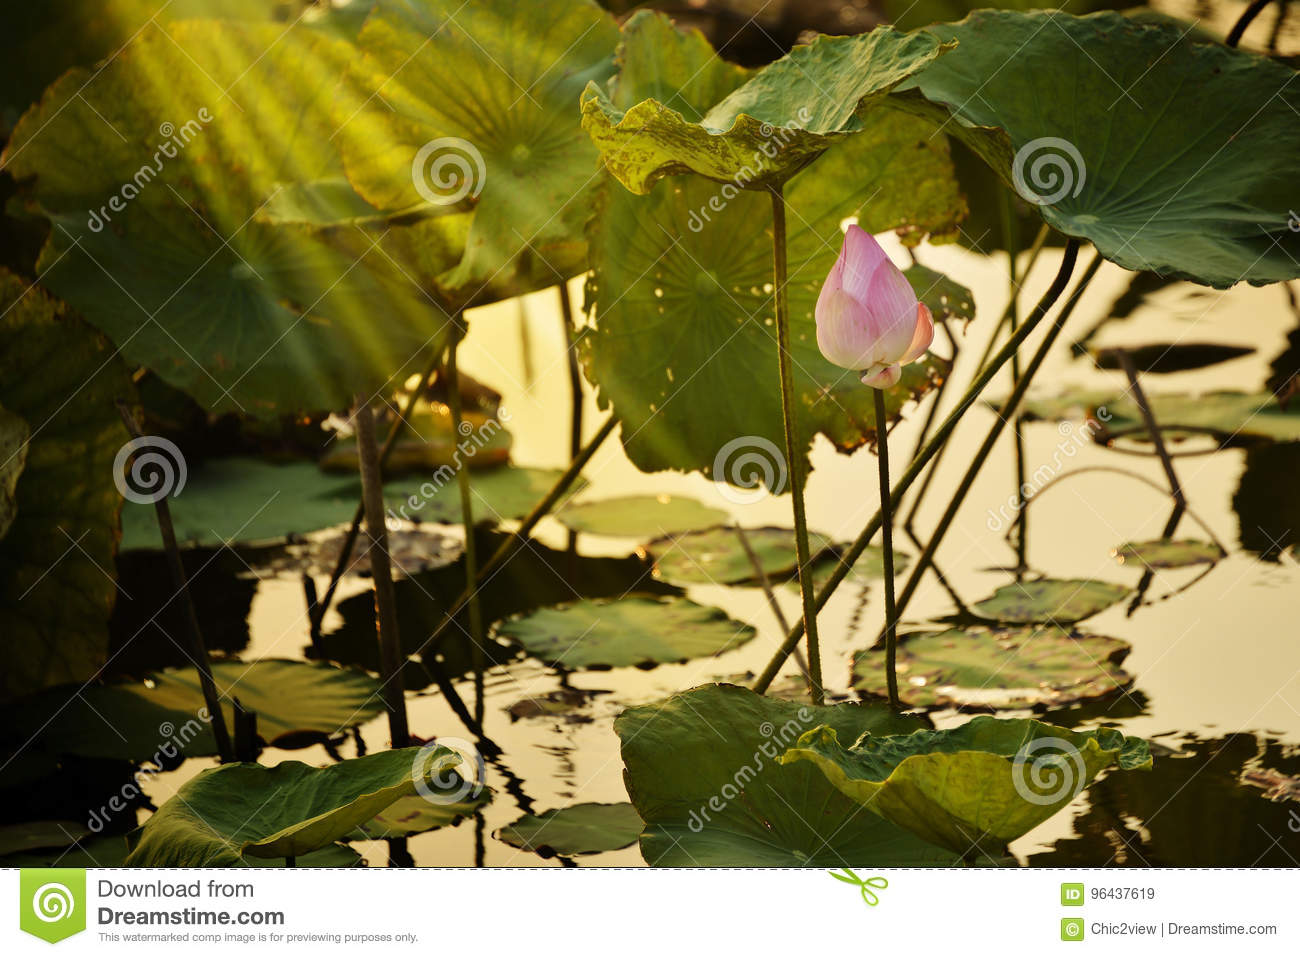 Make meditation with Indian Lotus, Sacred Lotus, Bean of India in lagoon picture with evening light